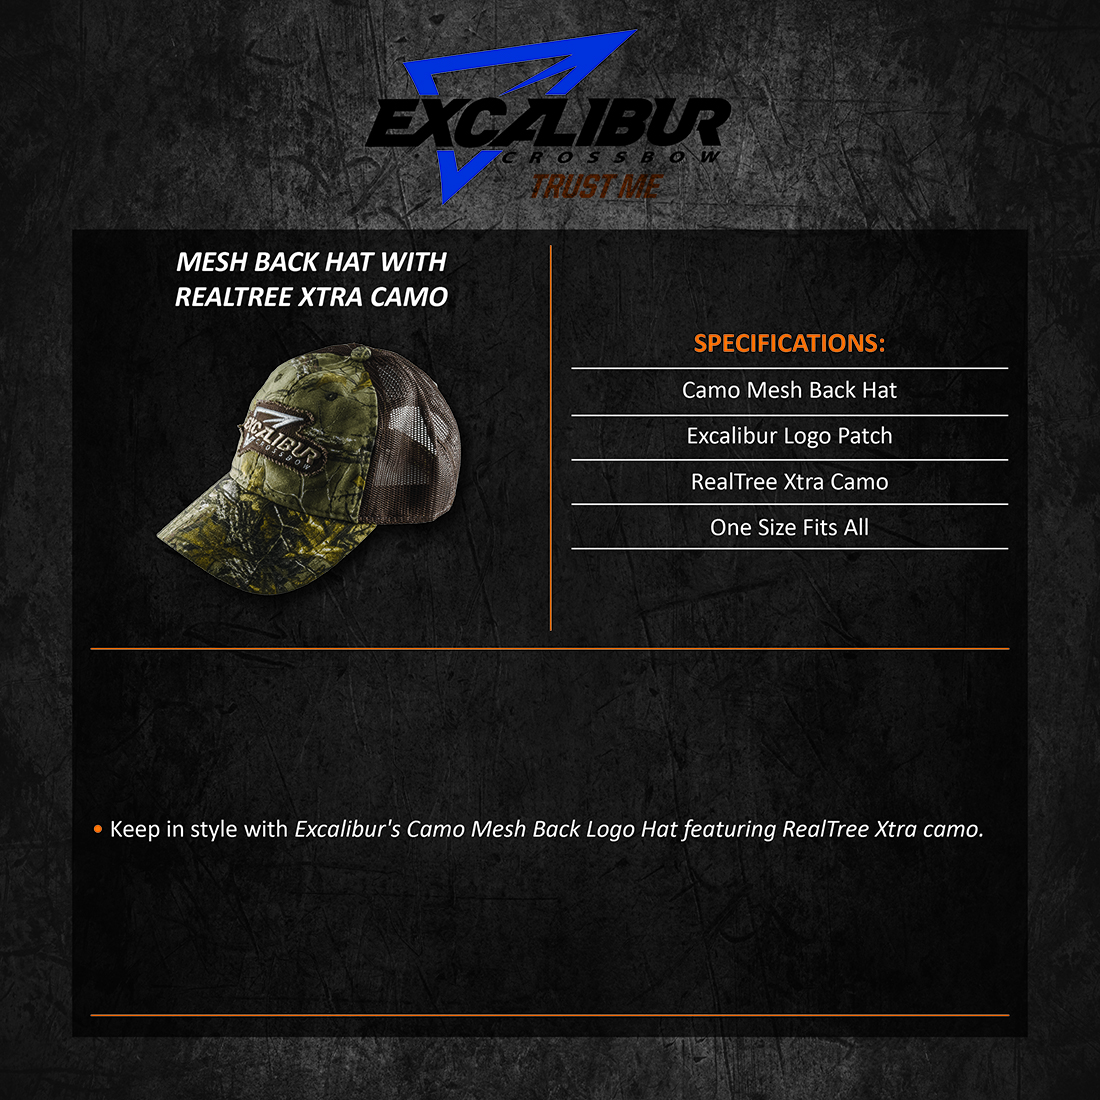 Excalibur_RealTree_Xtra_Camo_Mesh_Hat_Product_Description